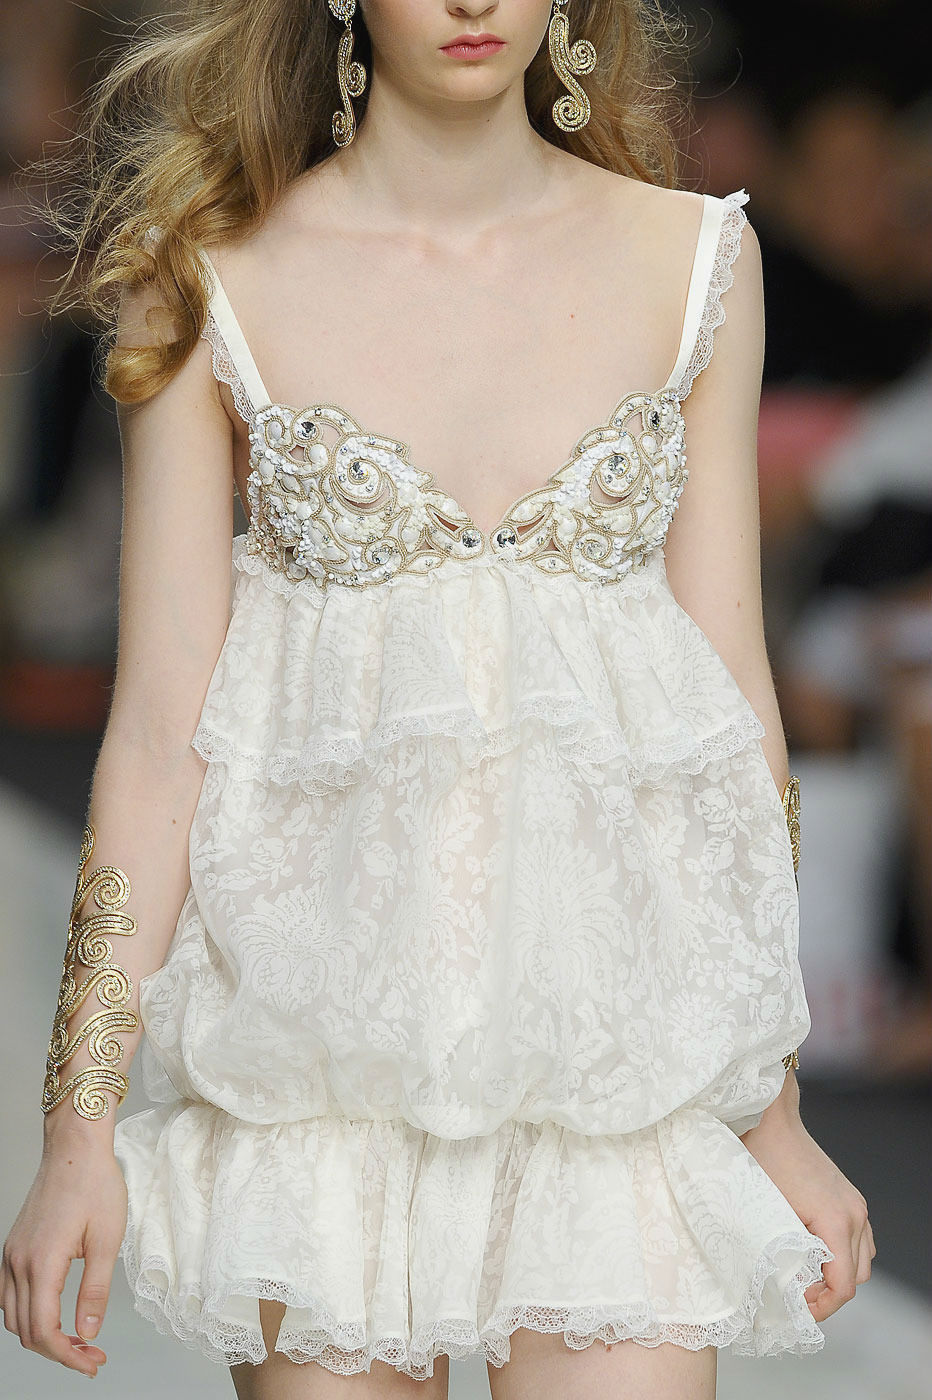 parischiccouture:  Roccobarocco Milan Spring 2012 White Dress